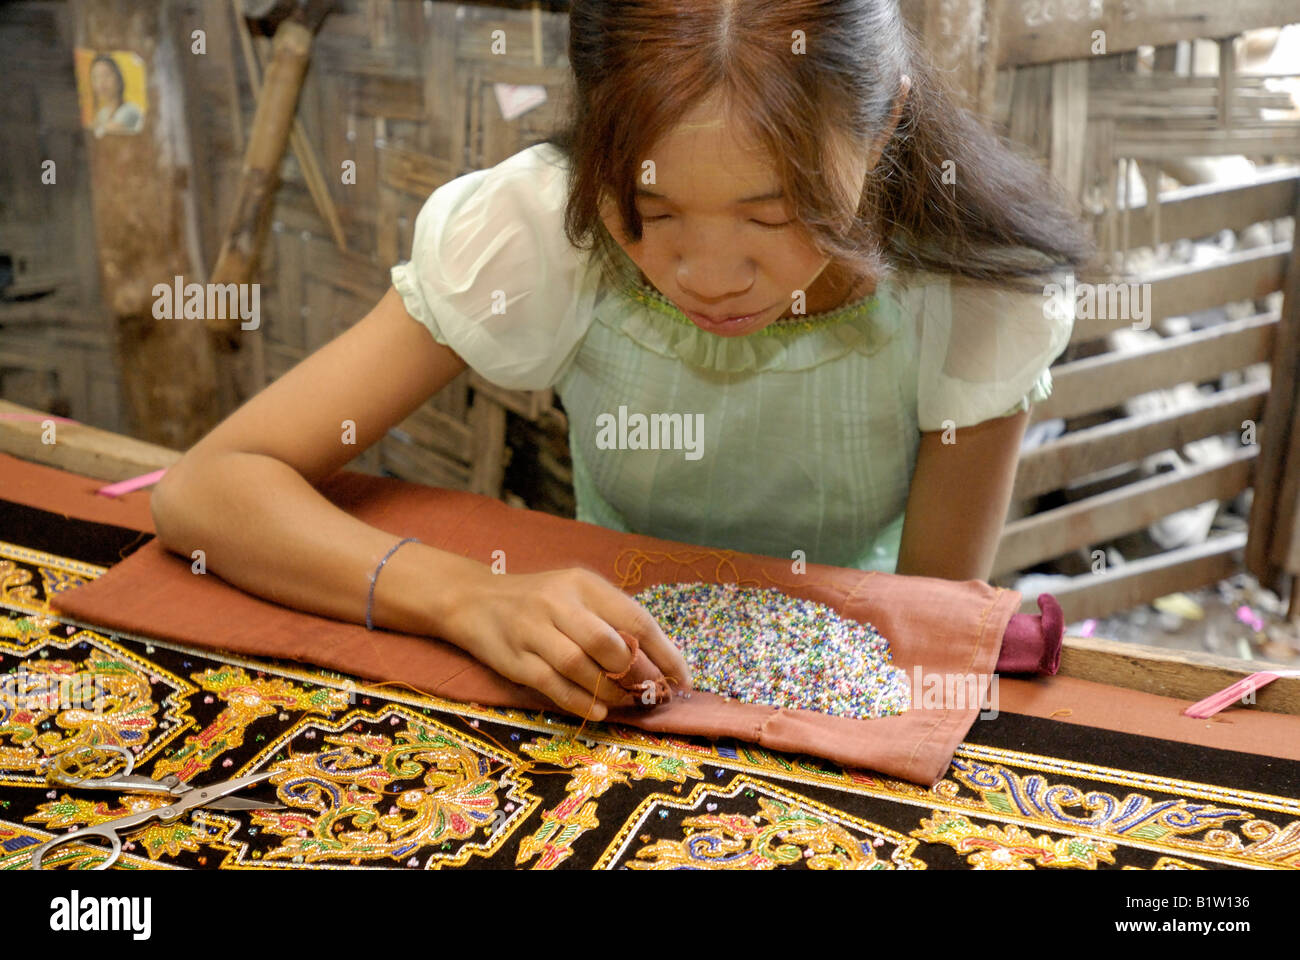 woman stitching tapestries in a workshop of tapestry marionettes and other souvenirs, MANDALAY AMARAPURA, MYANMAR - Stock Image